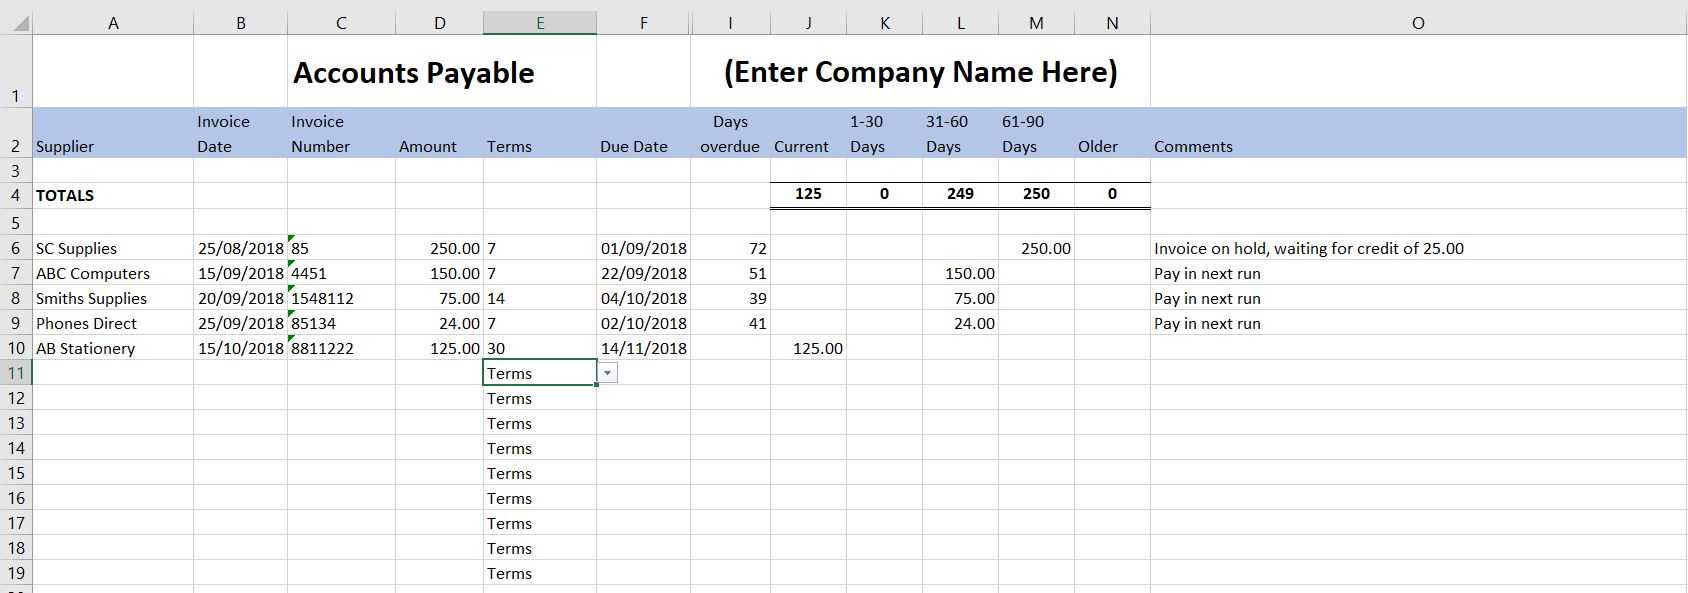 Free Excel Bookkeeping Templates - 14 Accounts Spreadsheets In Excel Template For Small Business Bookkeeping